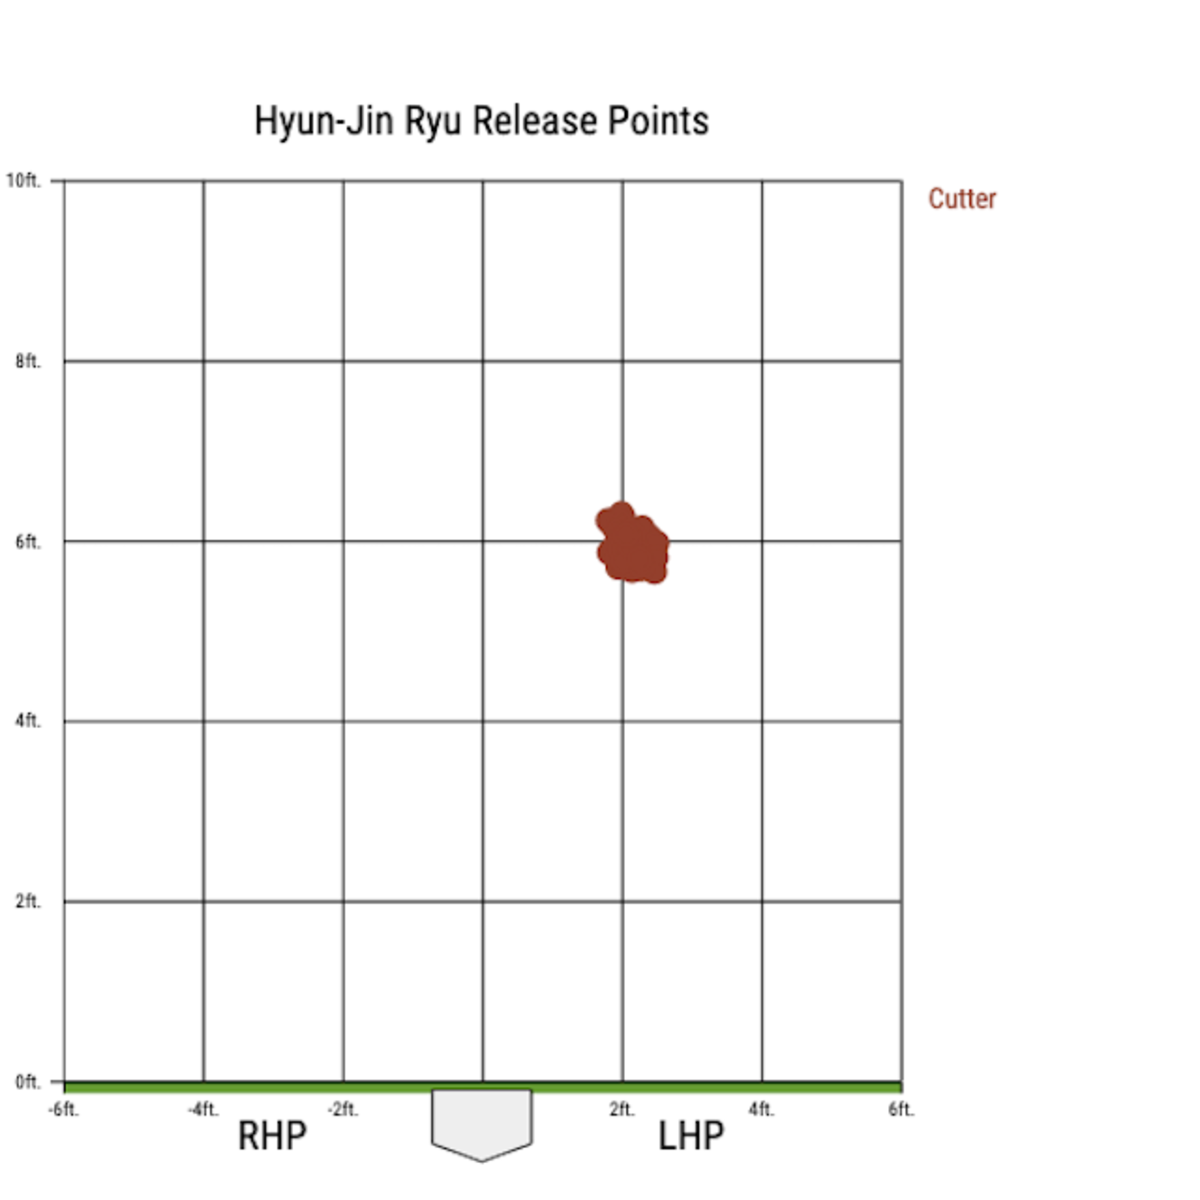 ryu2019releasepoints2.png